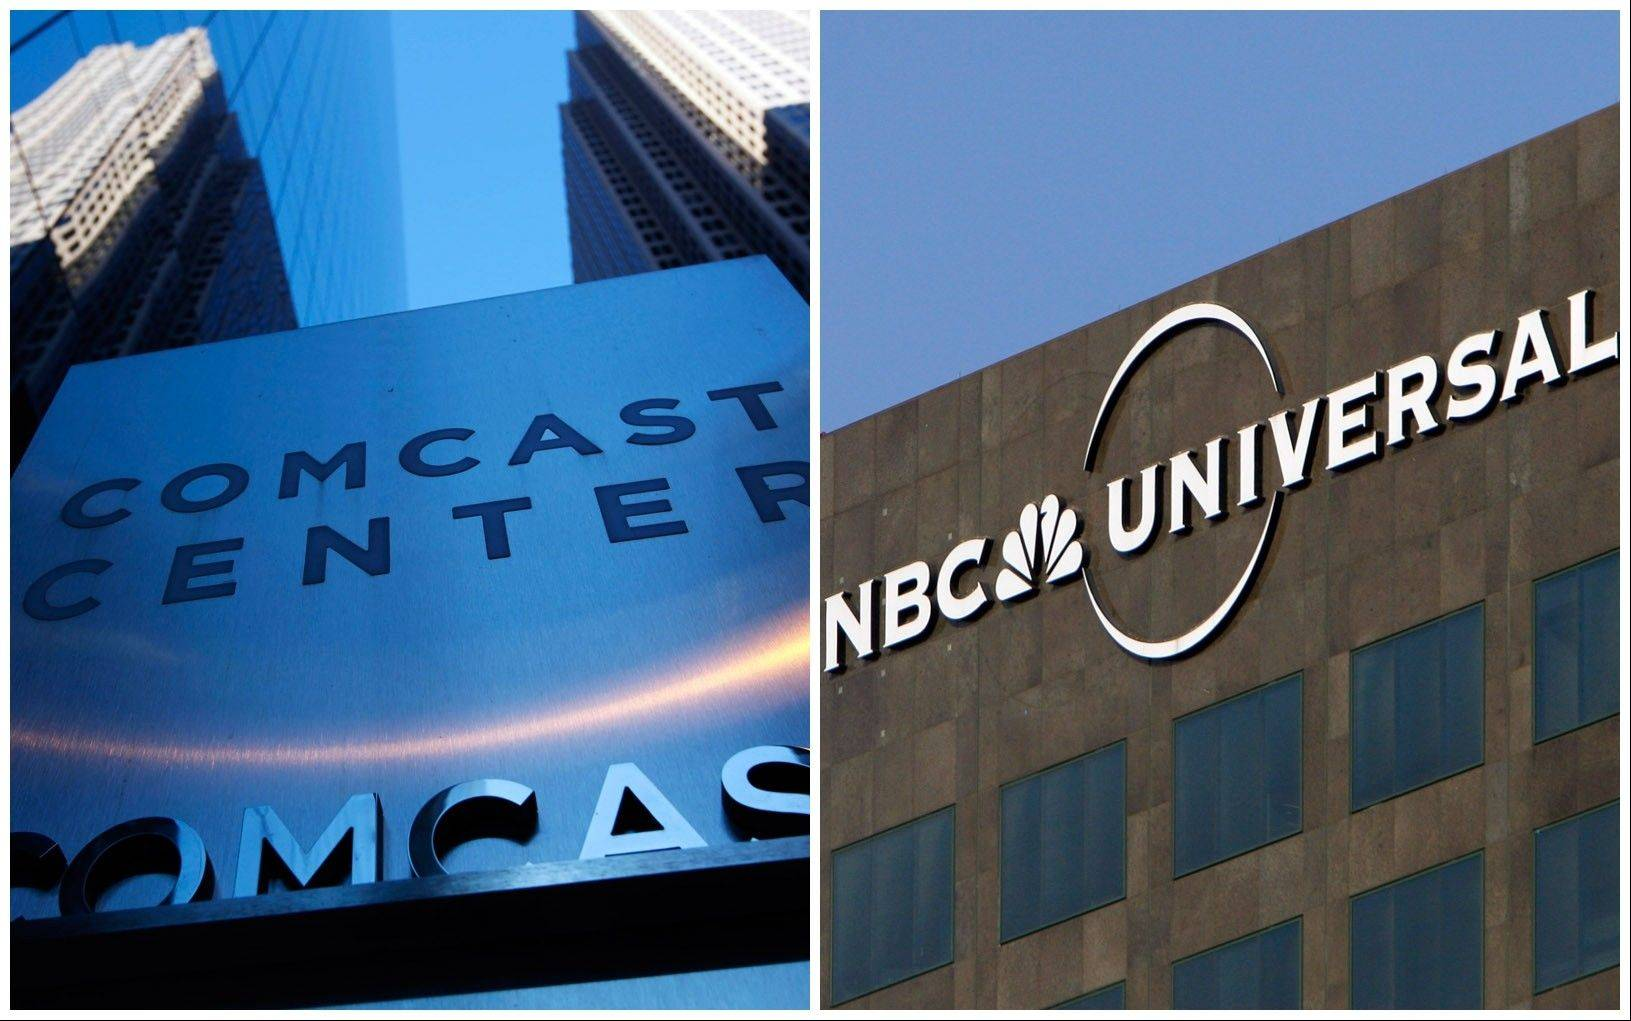 Comcast said on Tuesday it�s buying General Electric�s 49 percent stake in NBCUniversal joint venture for $16.7 billion. Comcast Corp. had bought a majority stake in the television and movie company in 2011. It had planned to take a larger stake in it over time.